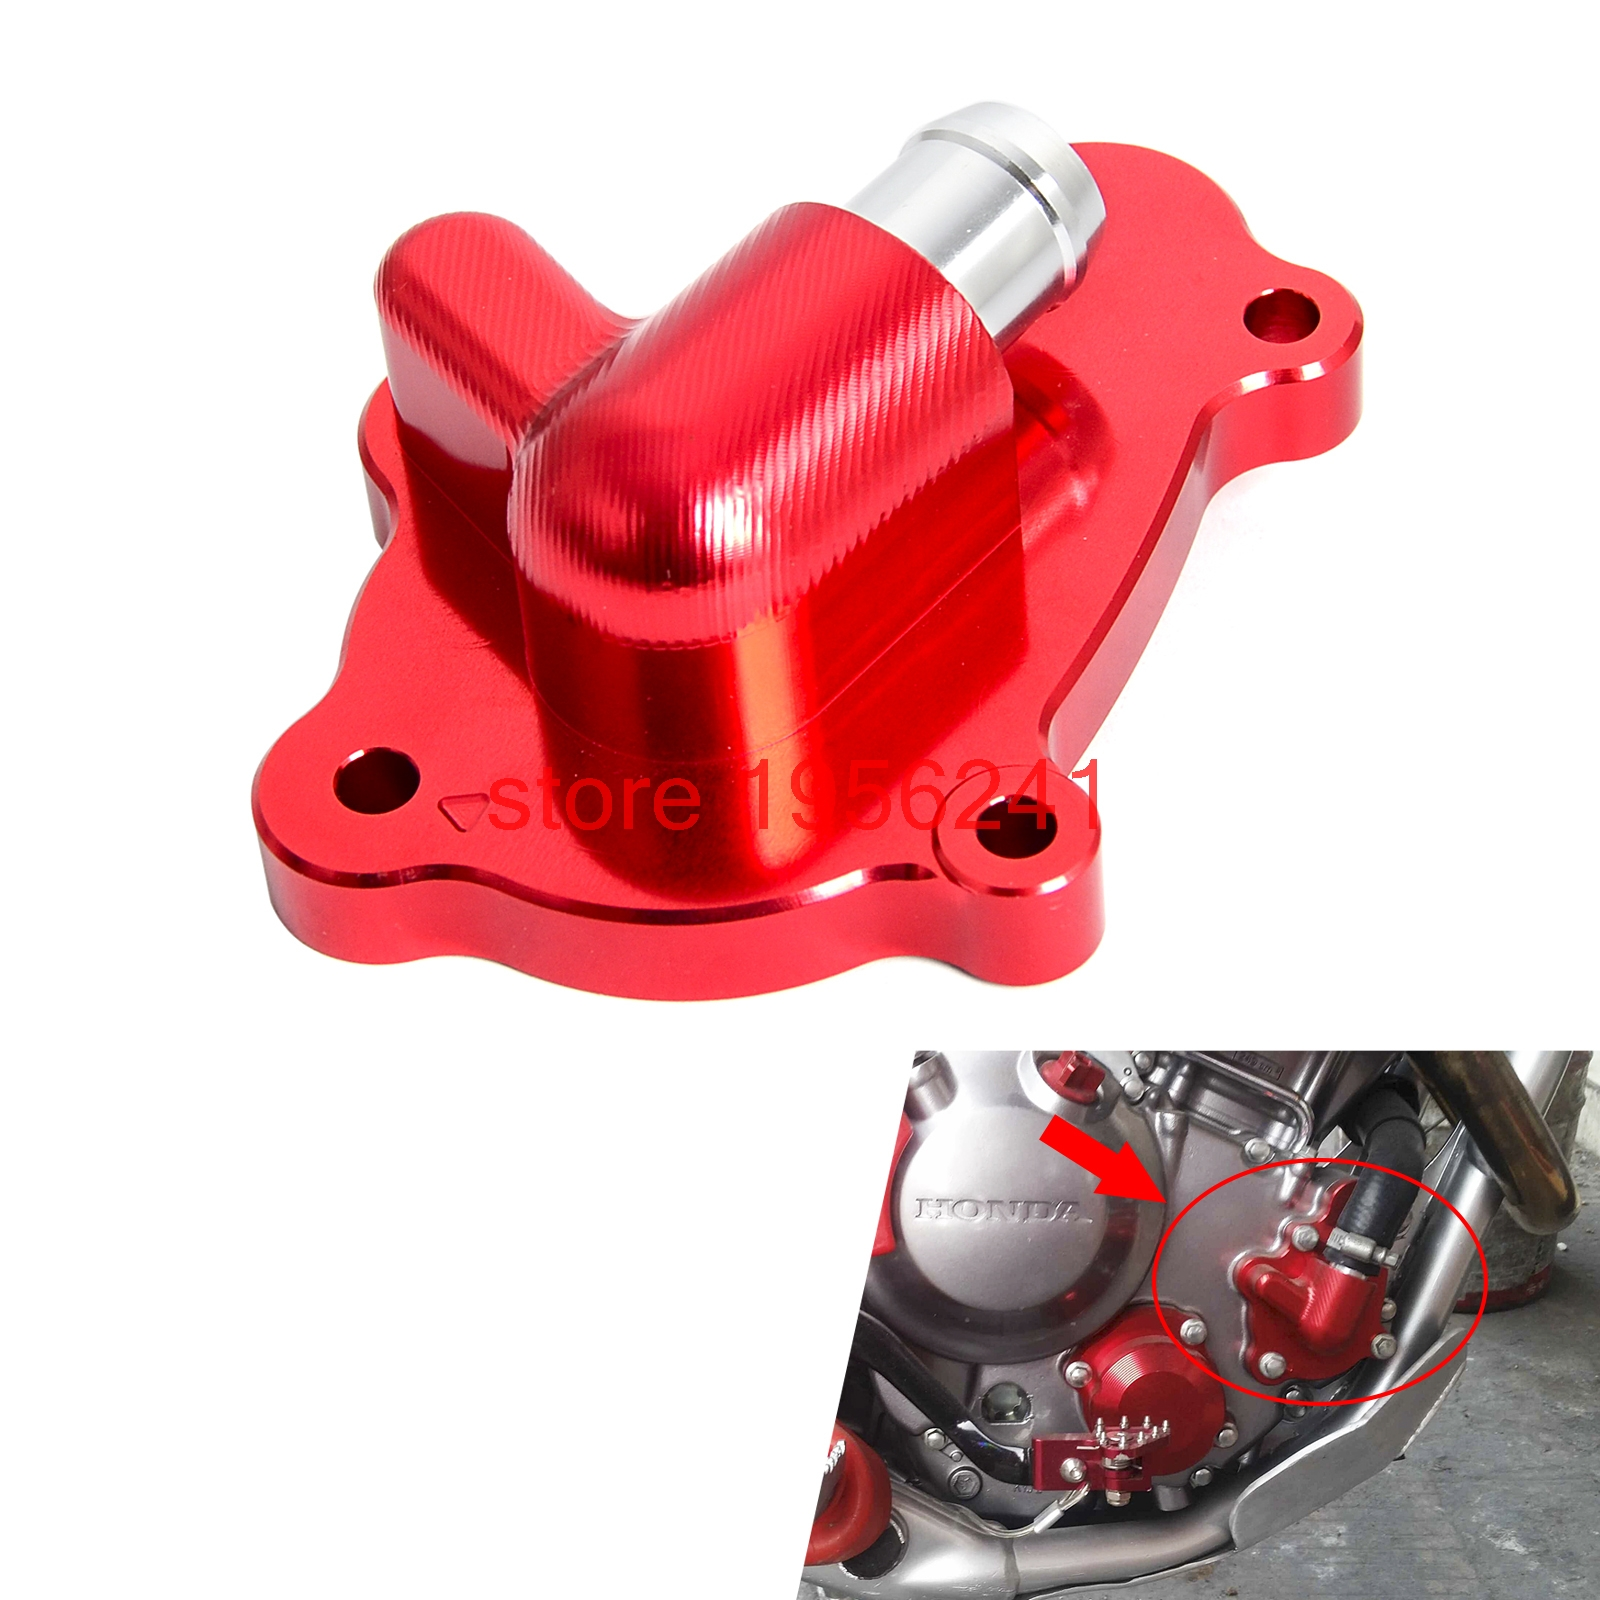 CNC Billet Aluminum Water Pump Cover Protector for Honda CRF250L CRF250M 2012 - 2015 2013 2014 CRF250 L M 2017 spring and summer fashion girls clothing europe and the united states wind dress long sleeved lace princess peng peng dress